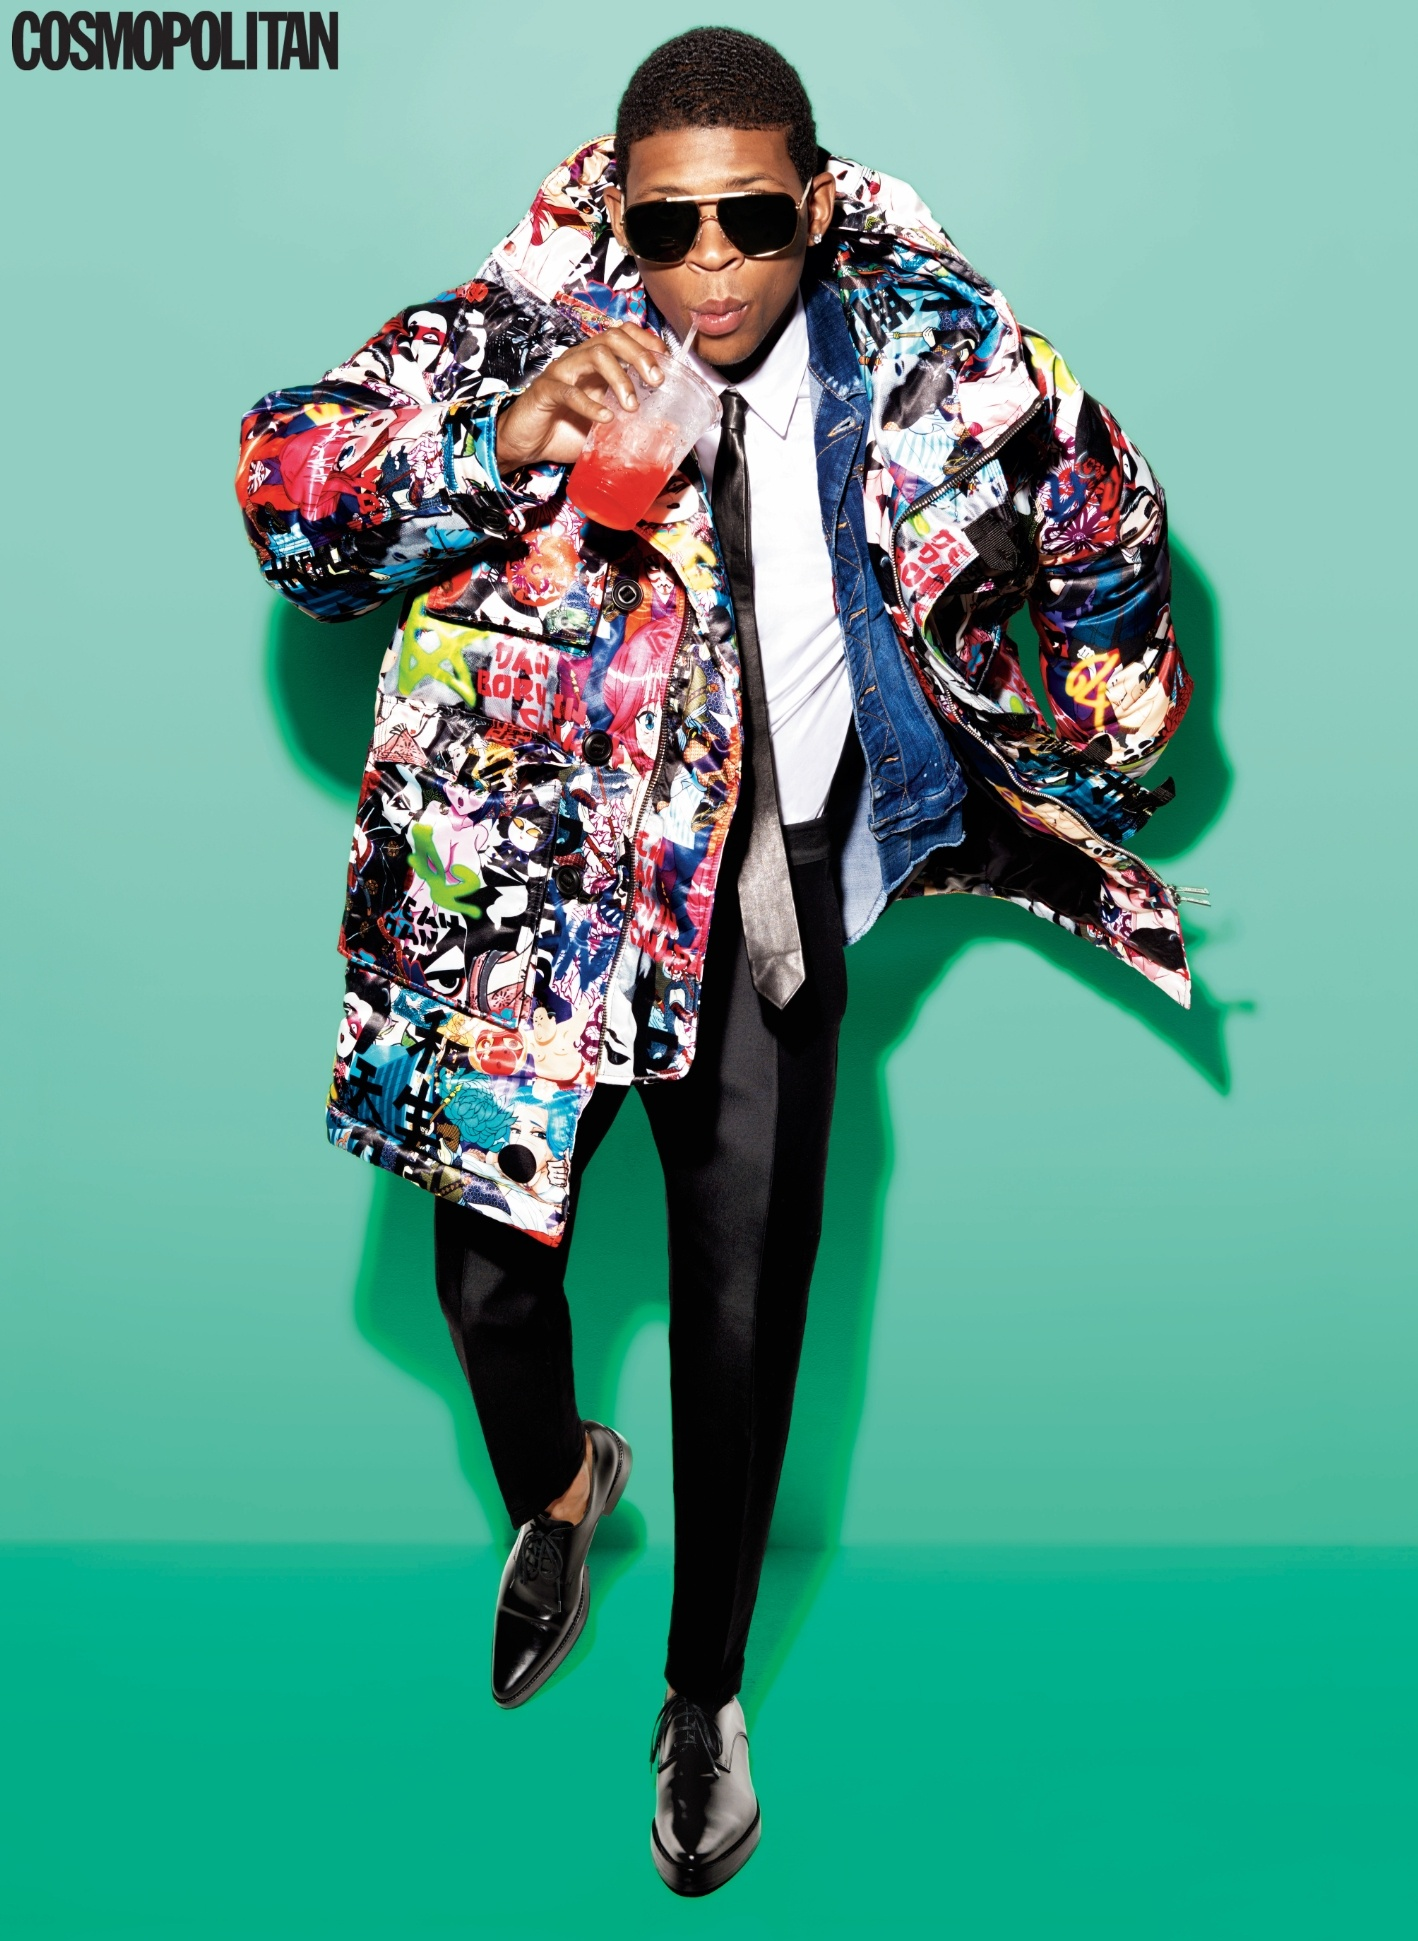 Empire Star Bryshere Gray For Cosmopolitan.